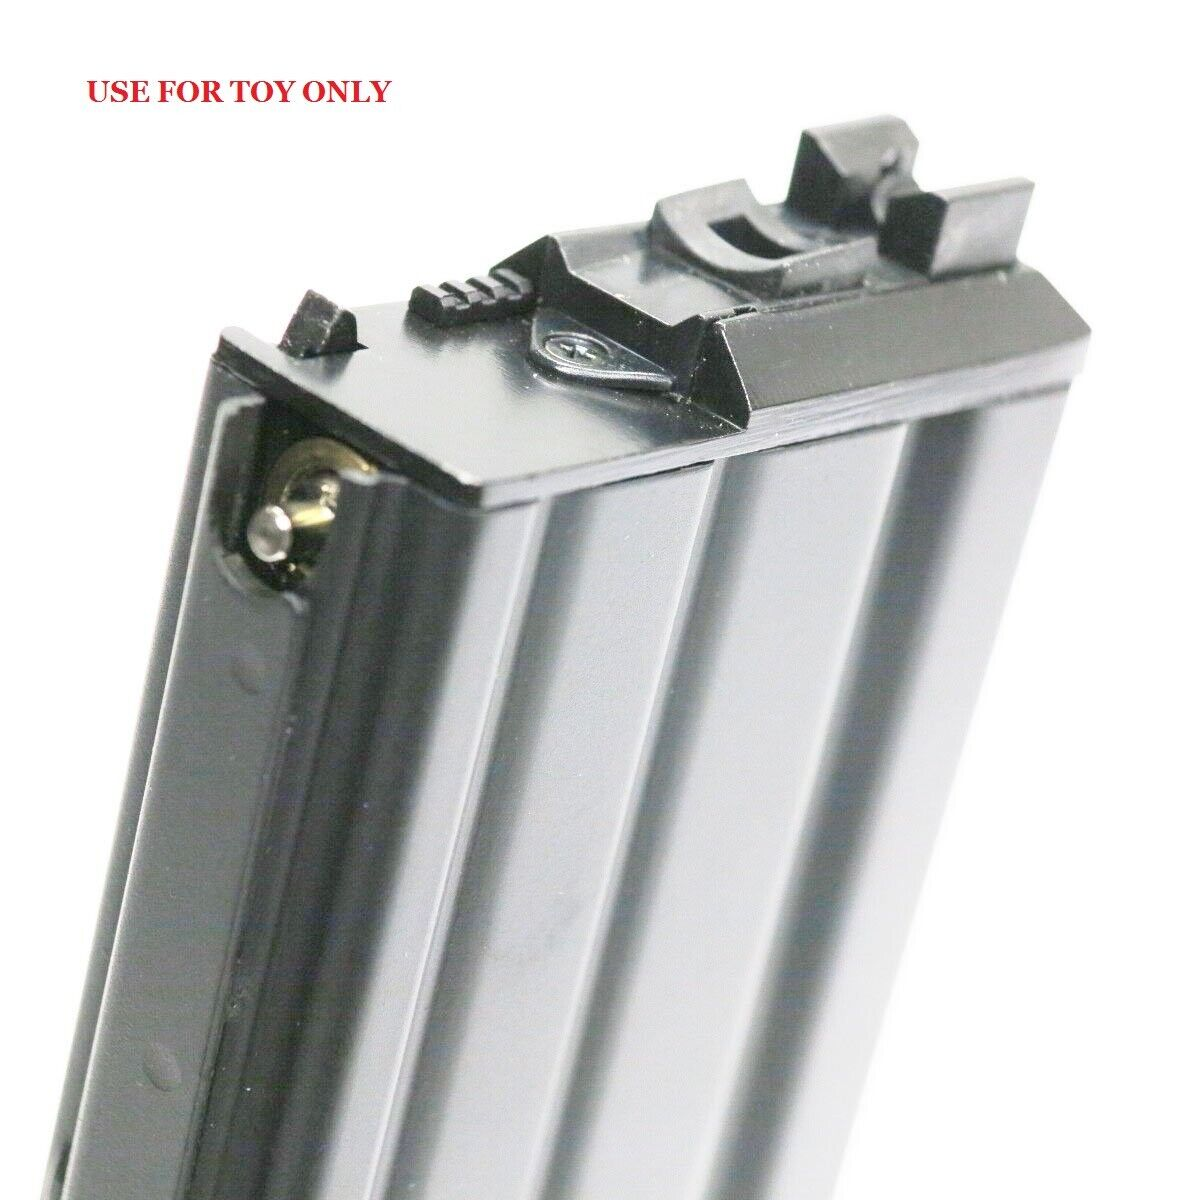 WE 30rds Open Bolt Airsoft Gas Magazine For WE SCAR   L85   M Series GBB BK